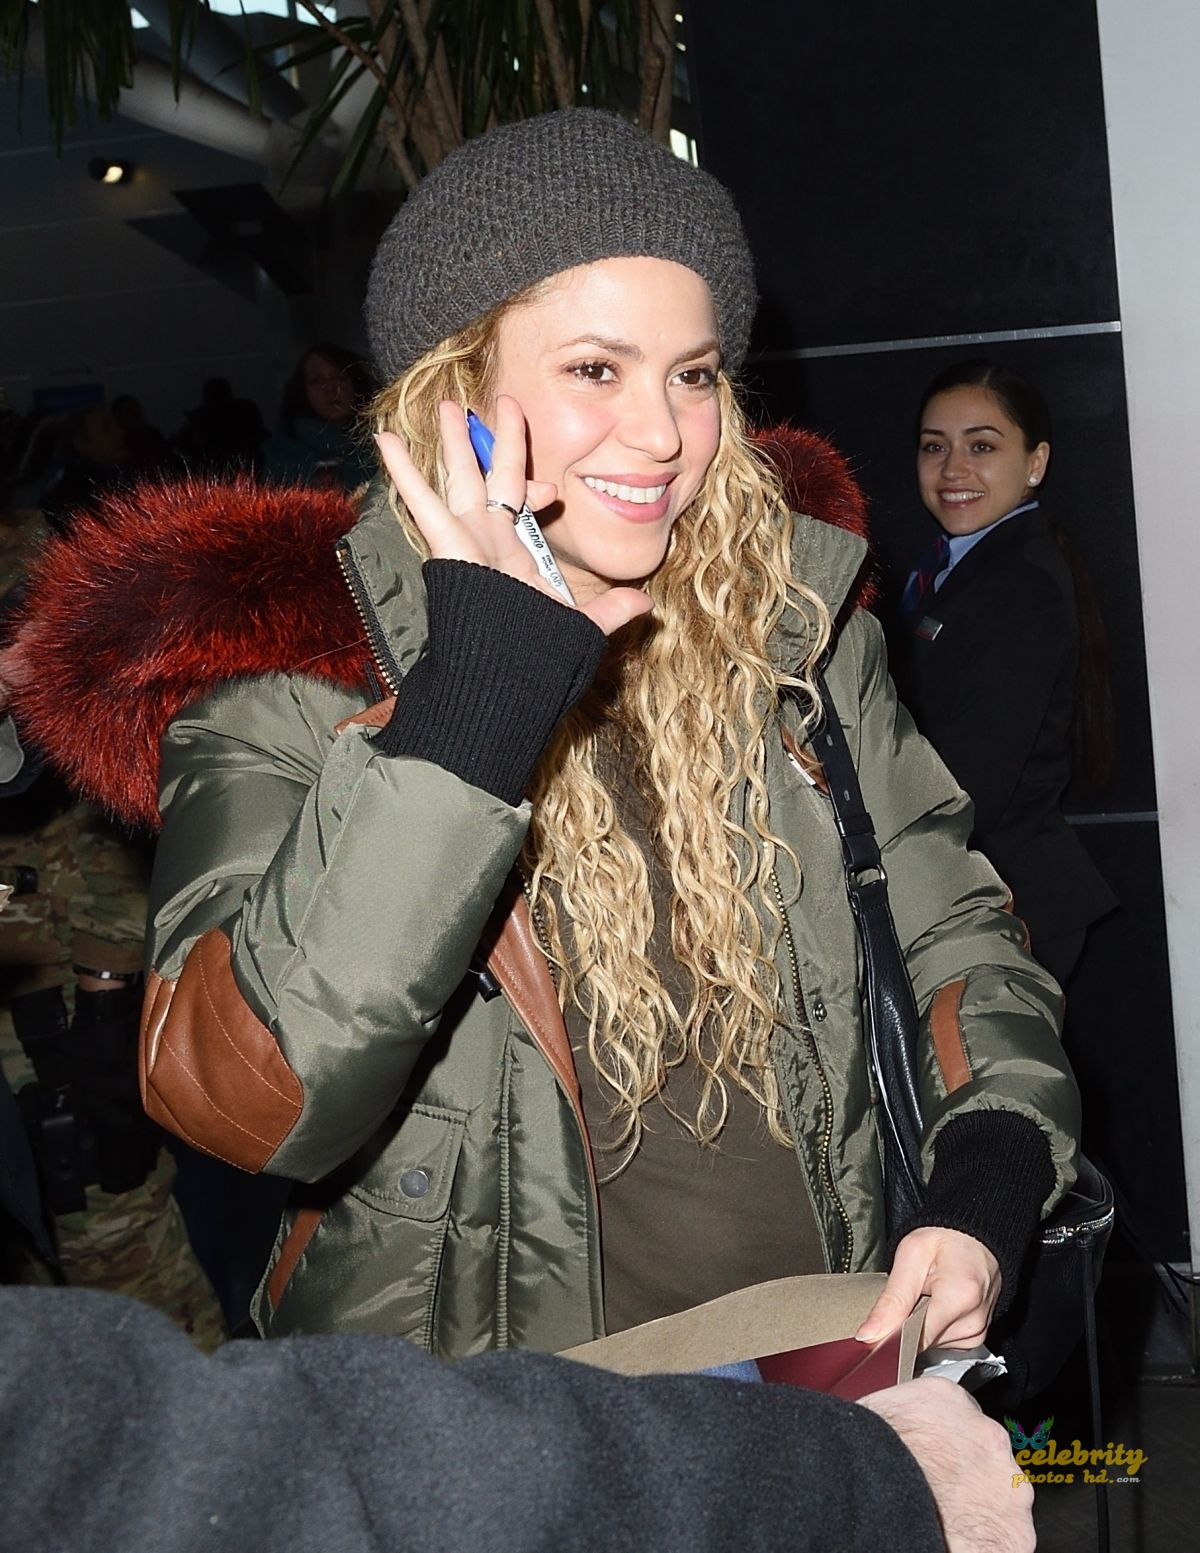 SHAKIRA at JFK Airport in New York (3)